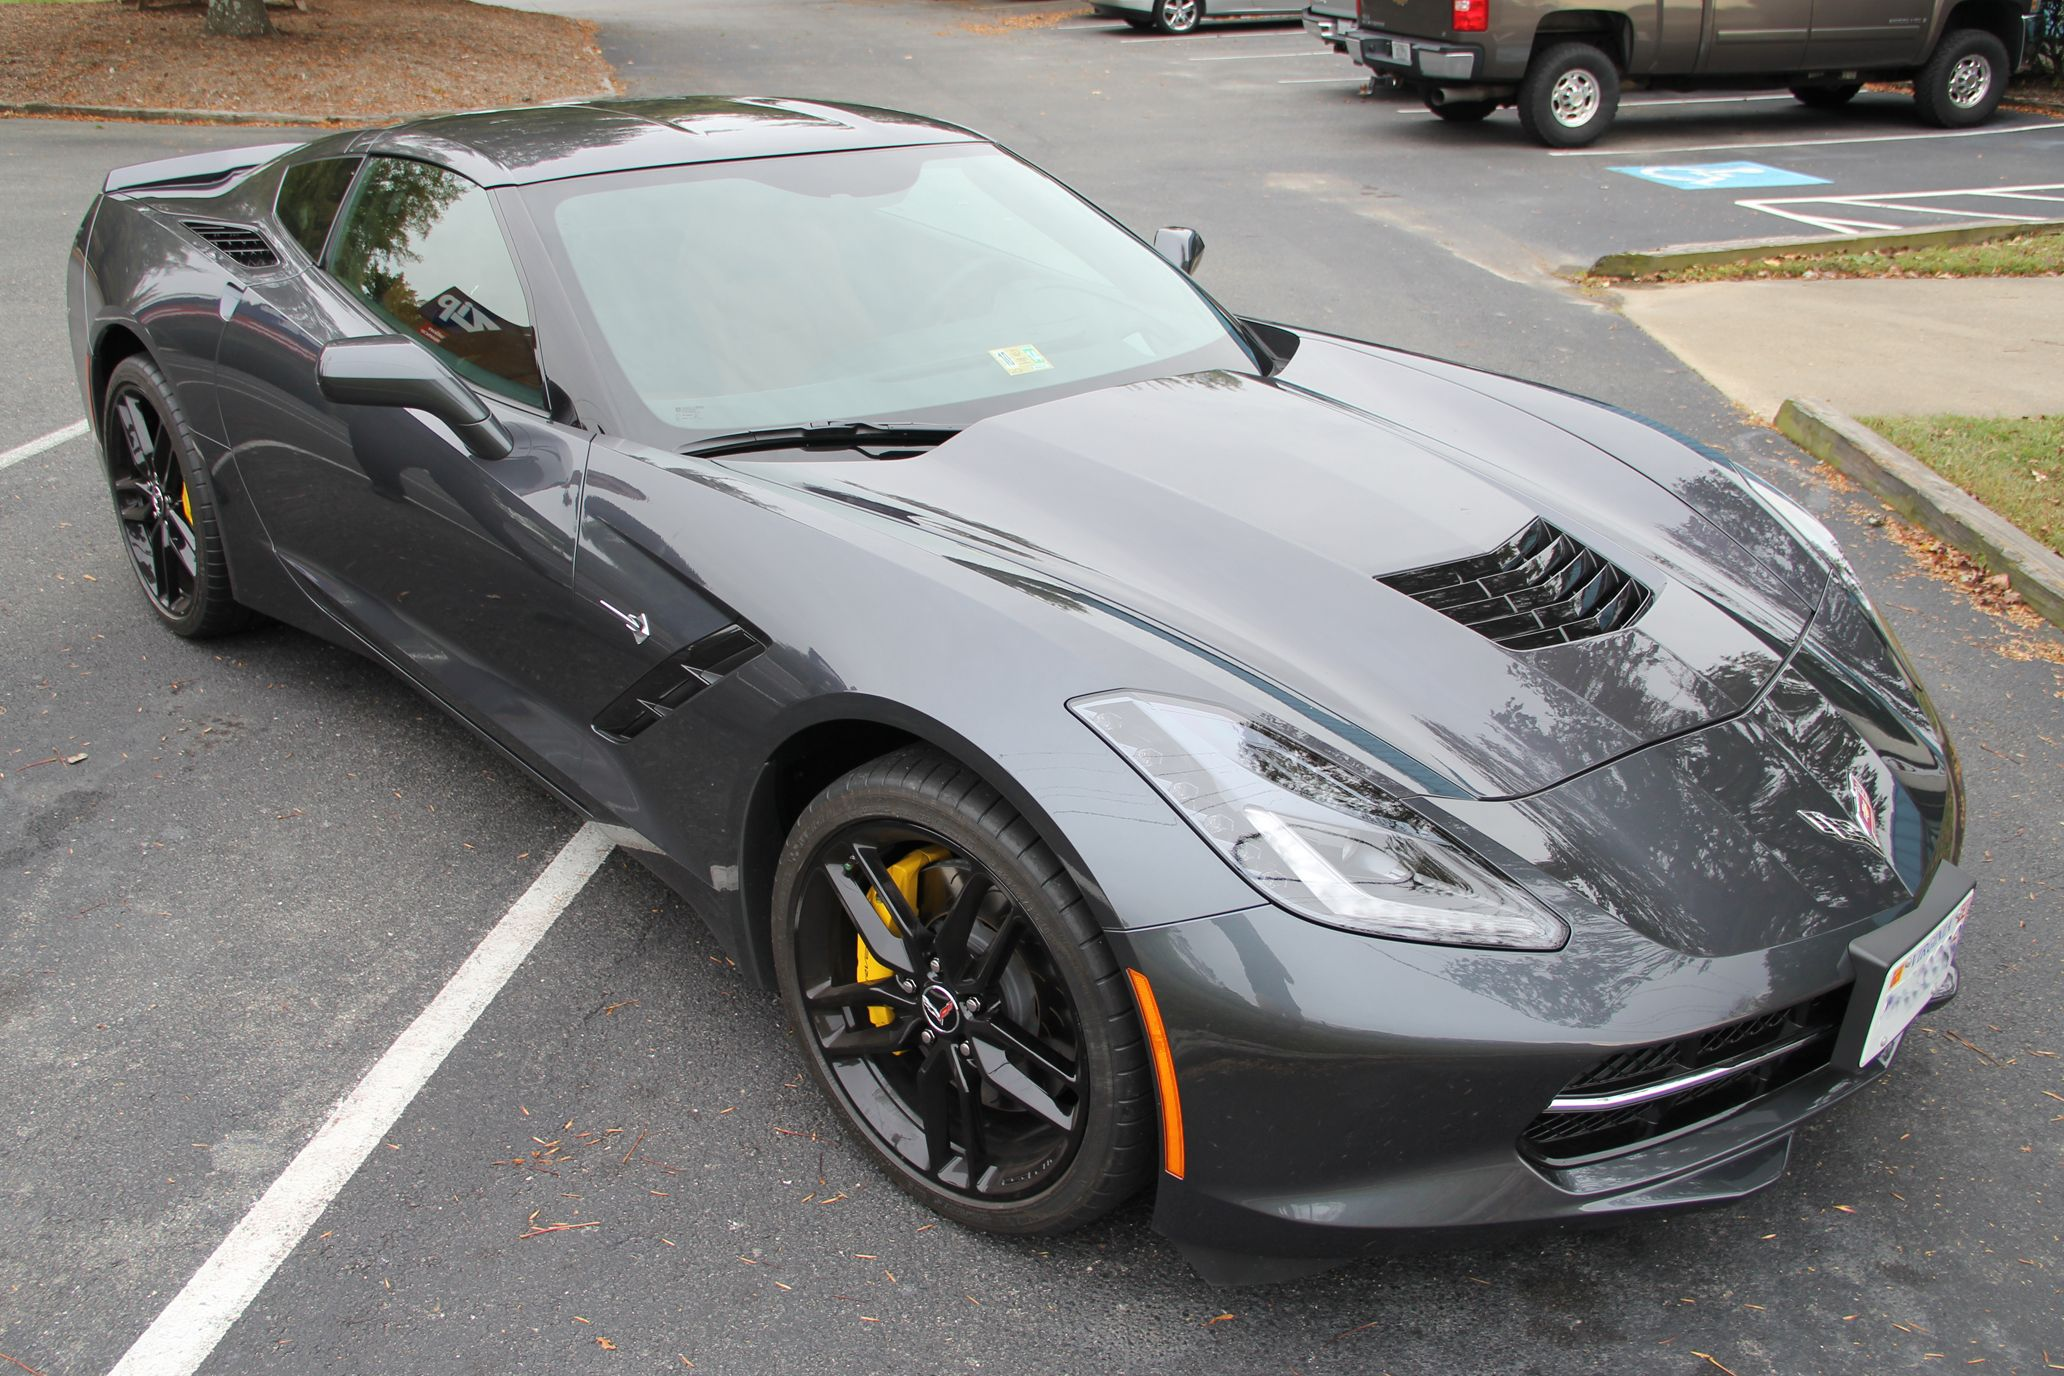 OOOhh Baby! Cyber Gray C7 #Corvette | Along for the ride ...